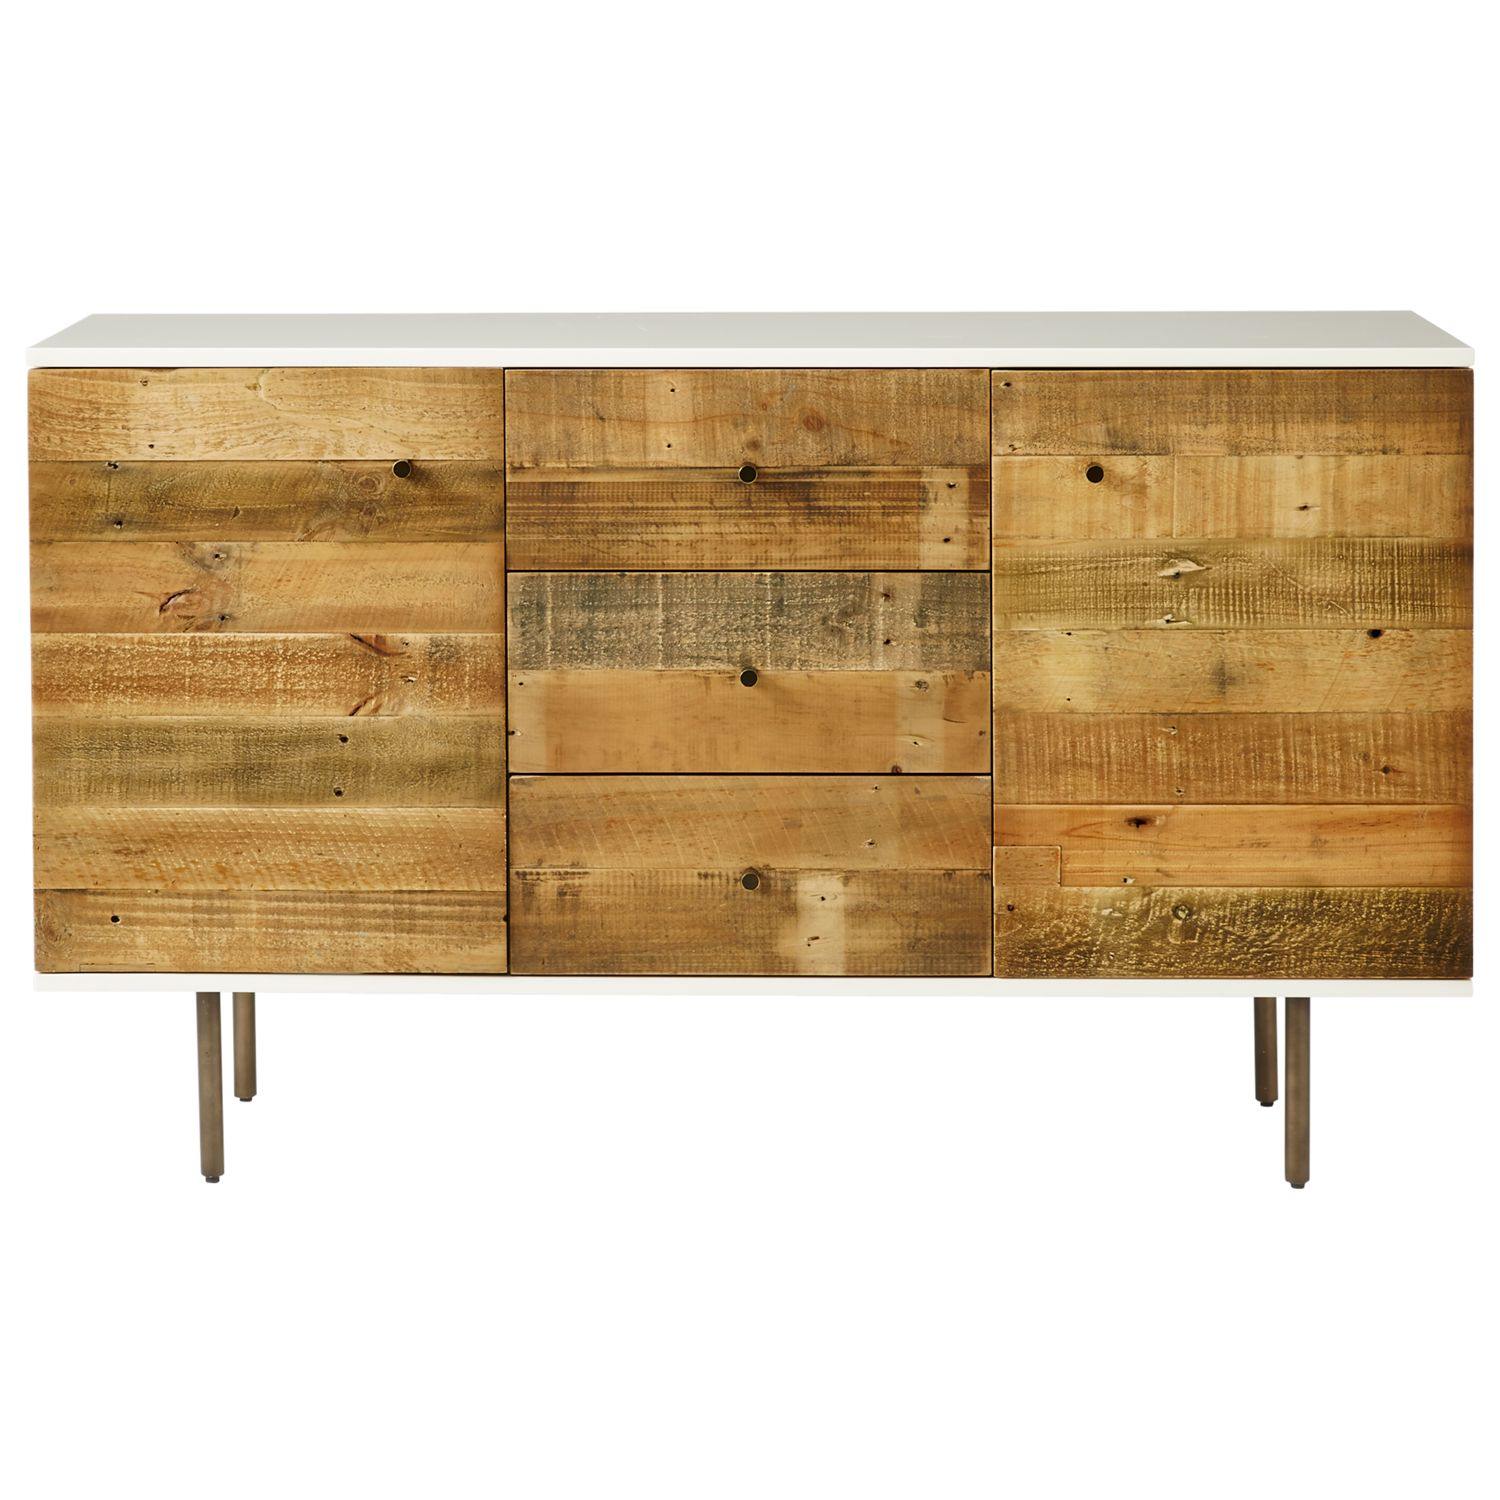 Addison Wood Storage Bench by Luxury Home Buy  : 234663830 from livingroomfurniture.1ofsc7a.xip.io size 1500 x 1500 jpeg 306kB